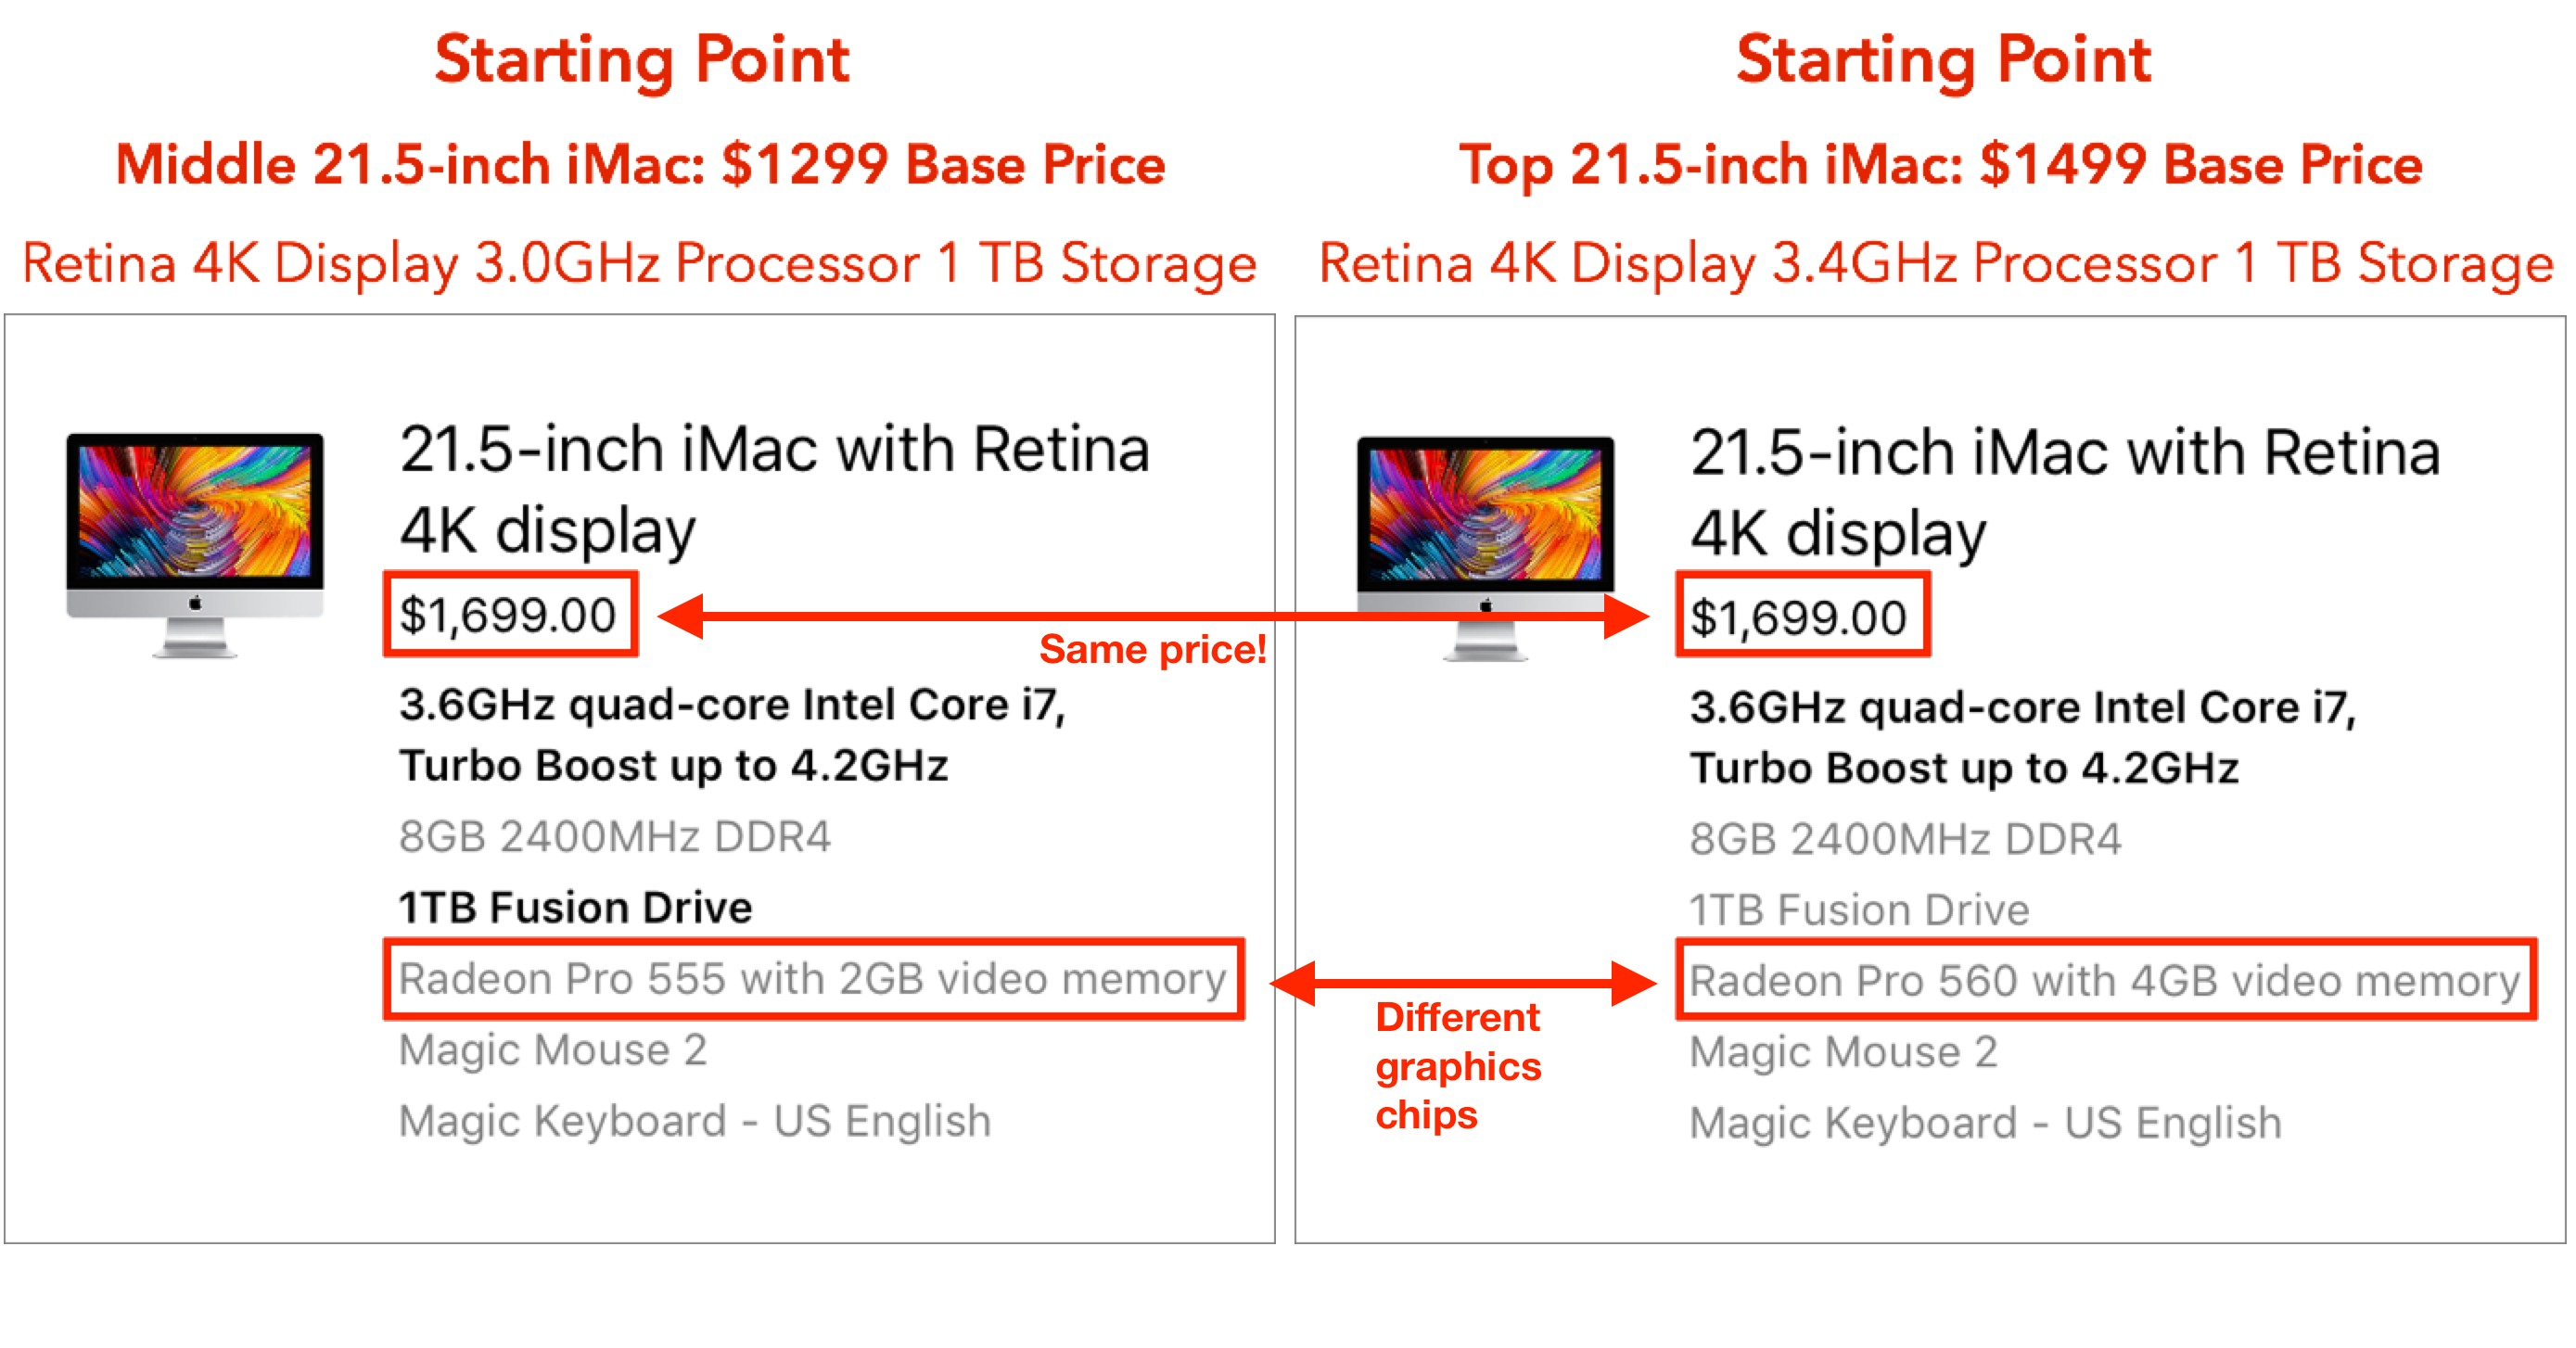 Careful with your starting point when picking an iMac